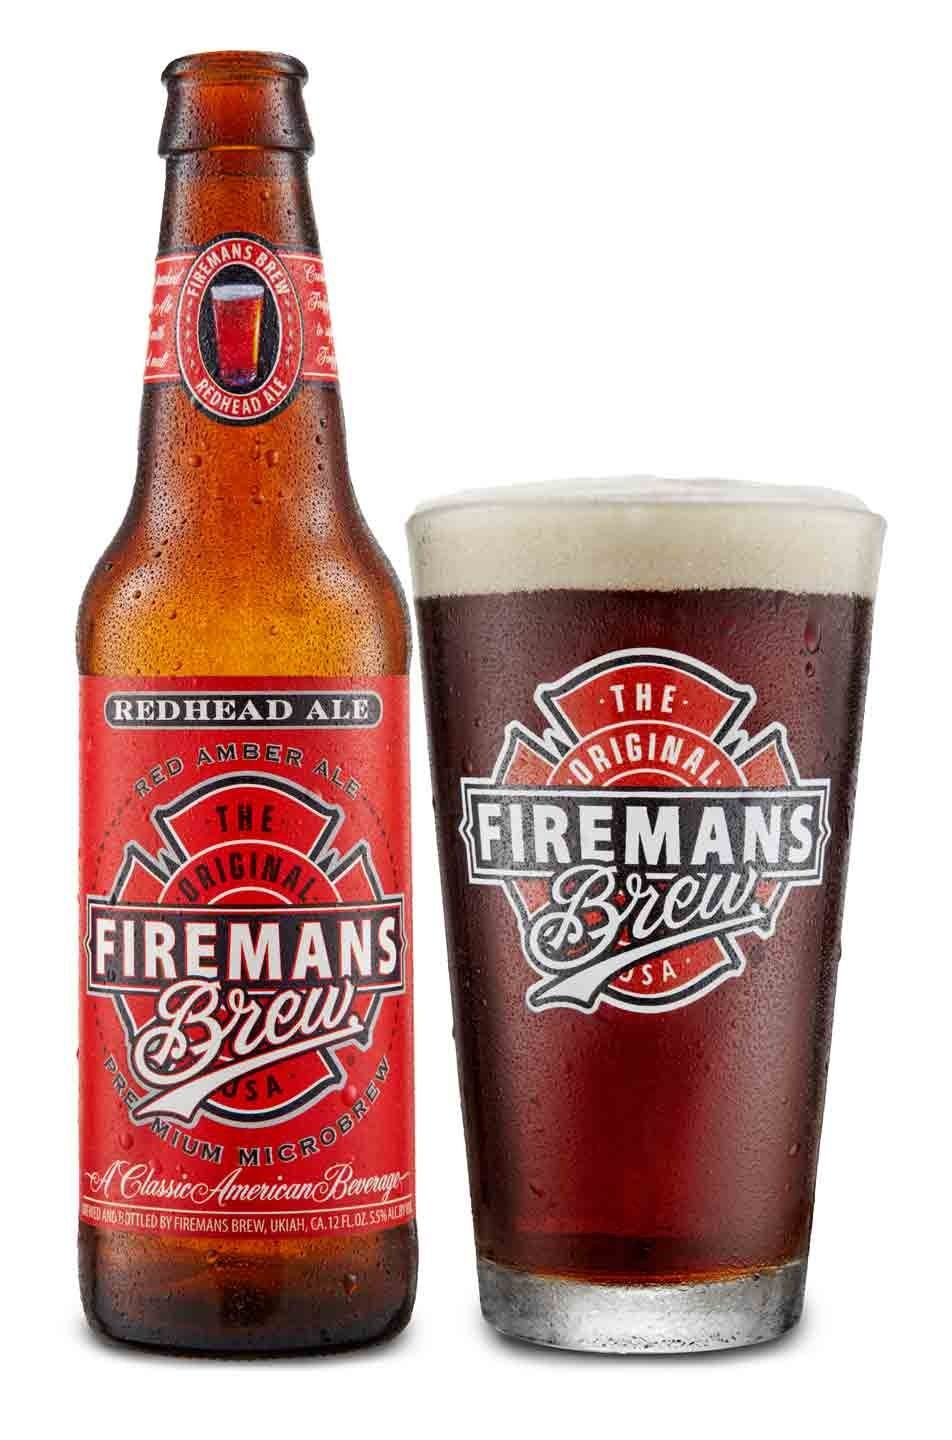 Fireman S Brew Redhead Ale Bottle With Logo Pint Glass Beer Refreshing Beer Beer Design